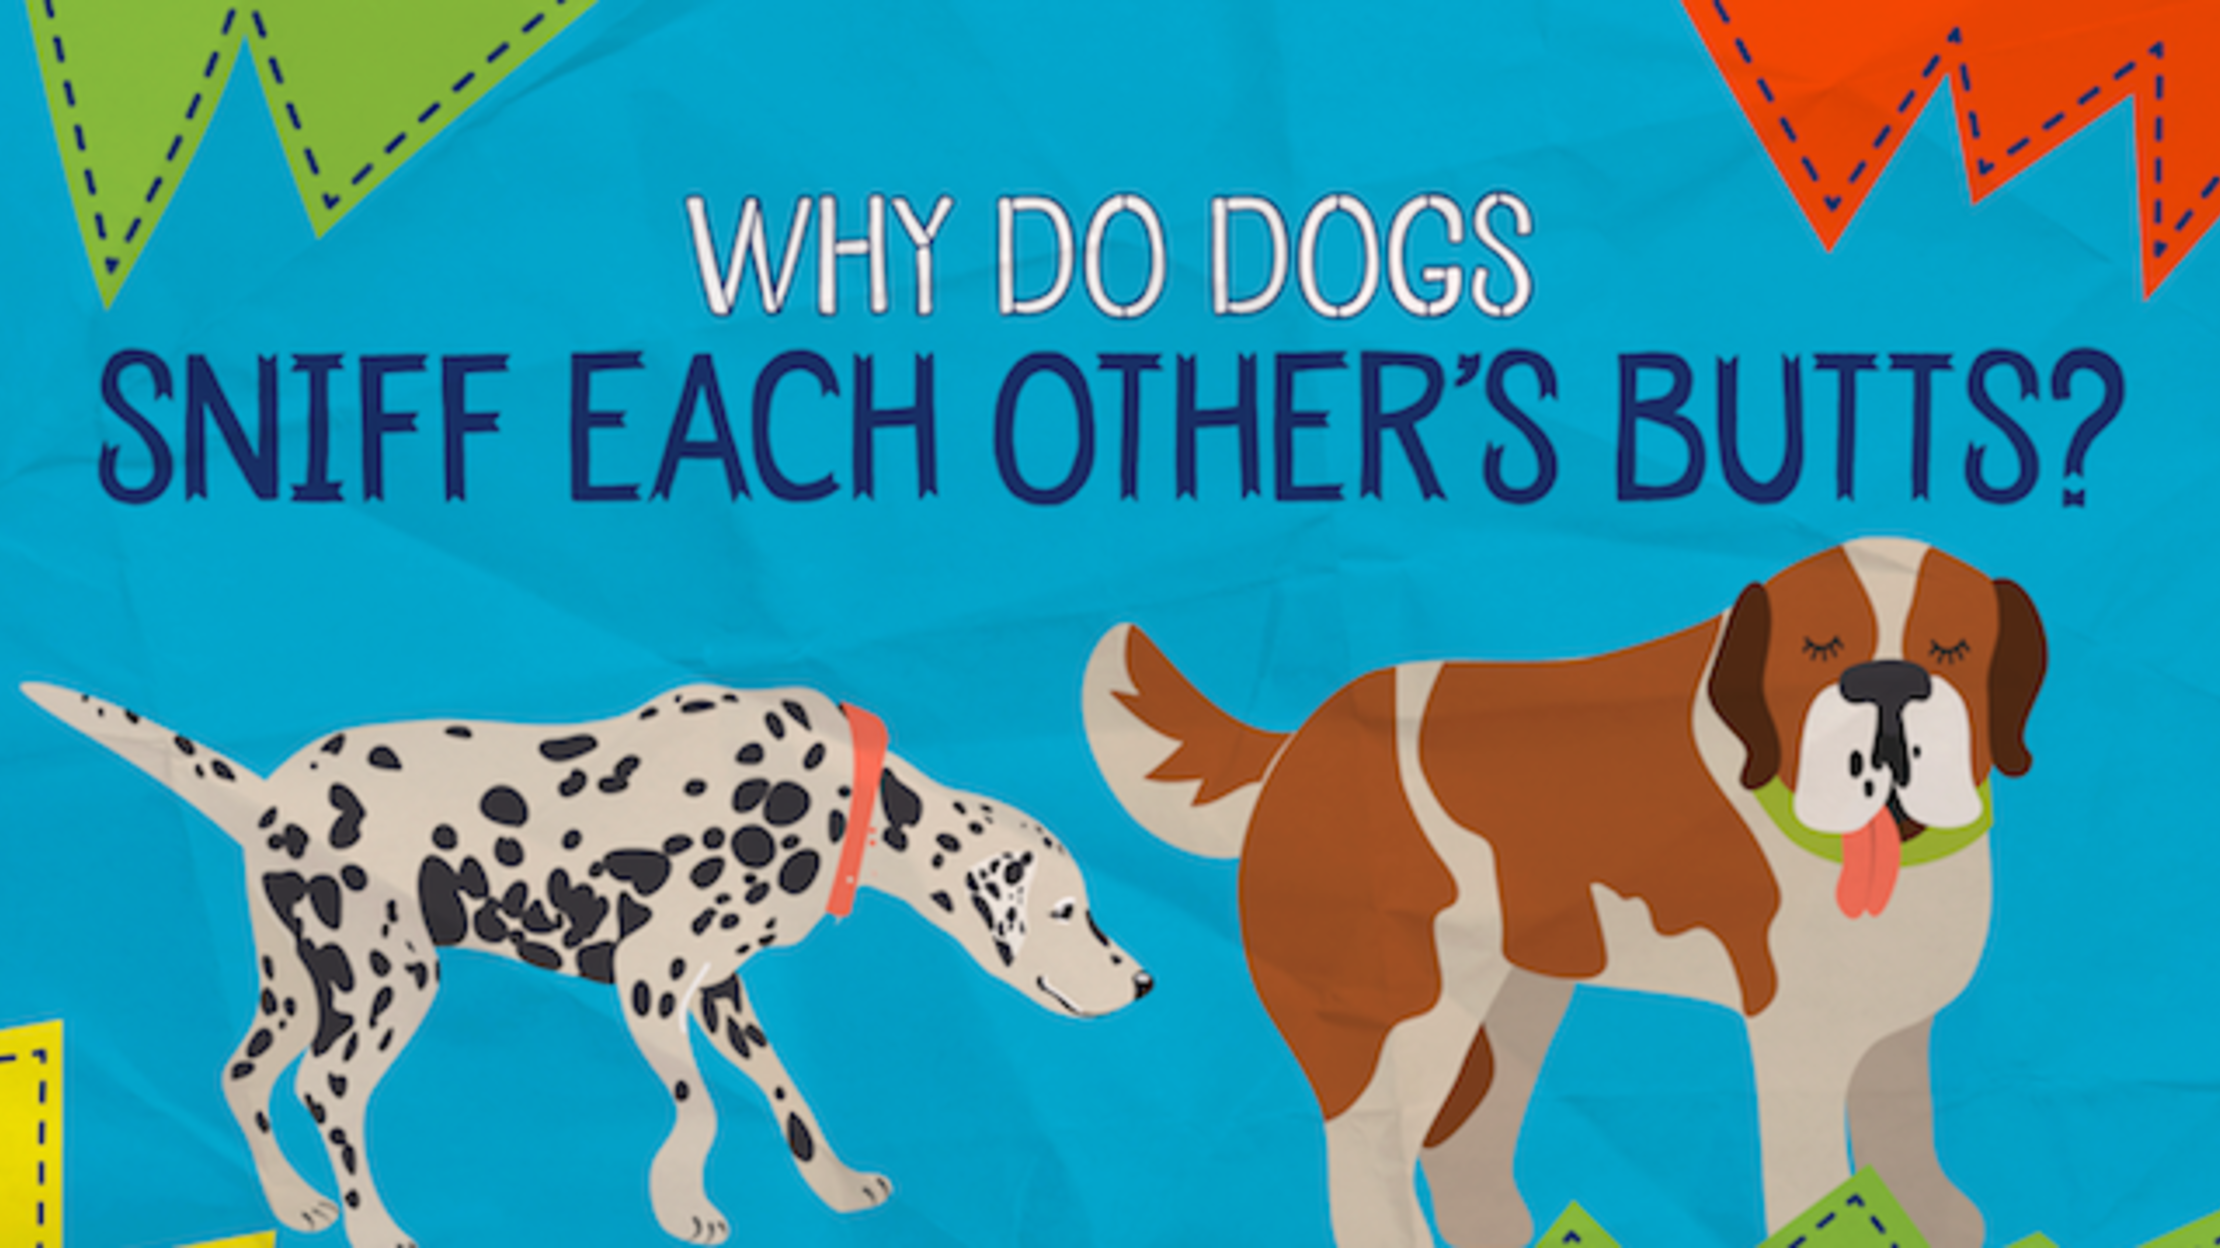 Why Do Dogs Sniff Each Other's Butts? | Mental Floss